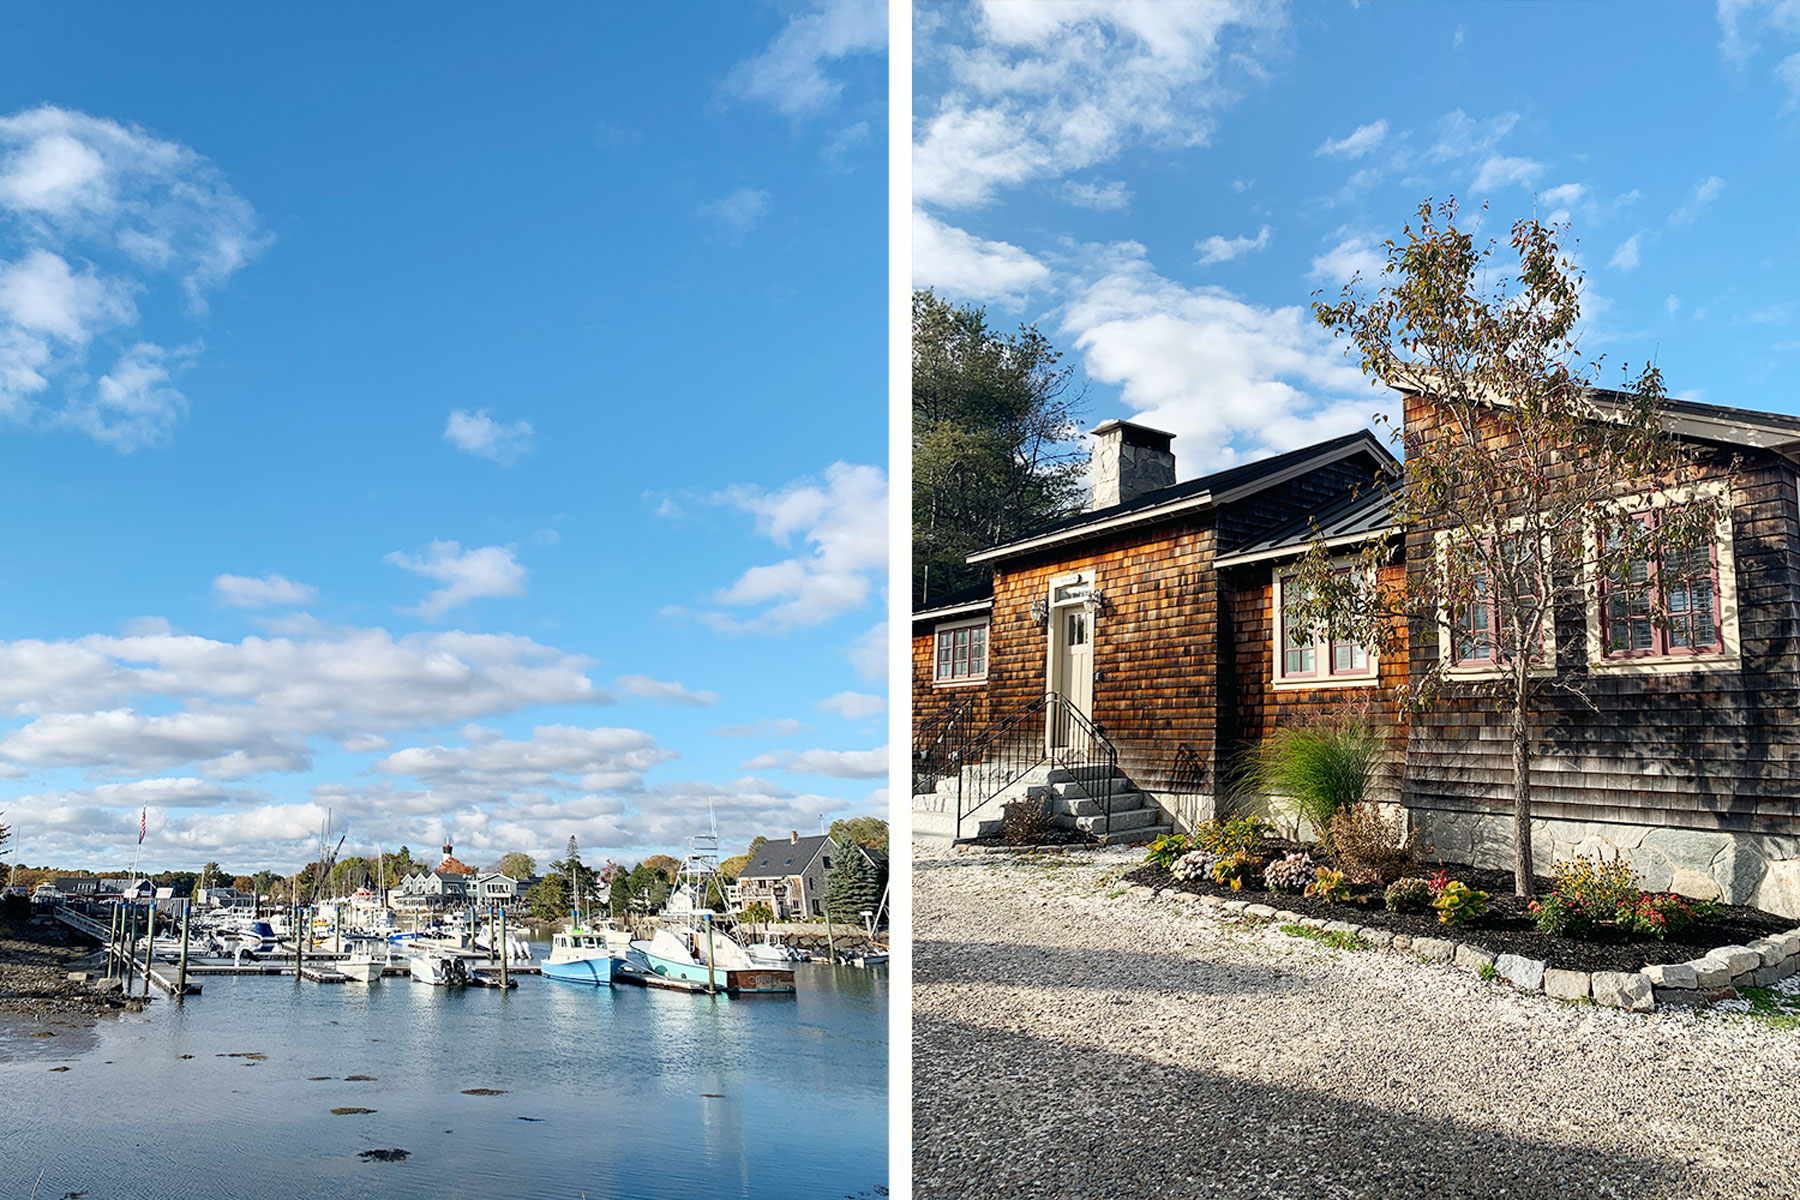 Left, boats in Kennebunk, Maine harbor; Right, exterior of Friendship Cottage